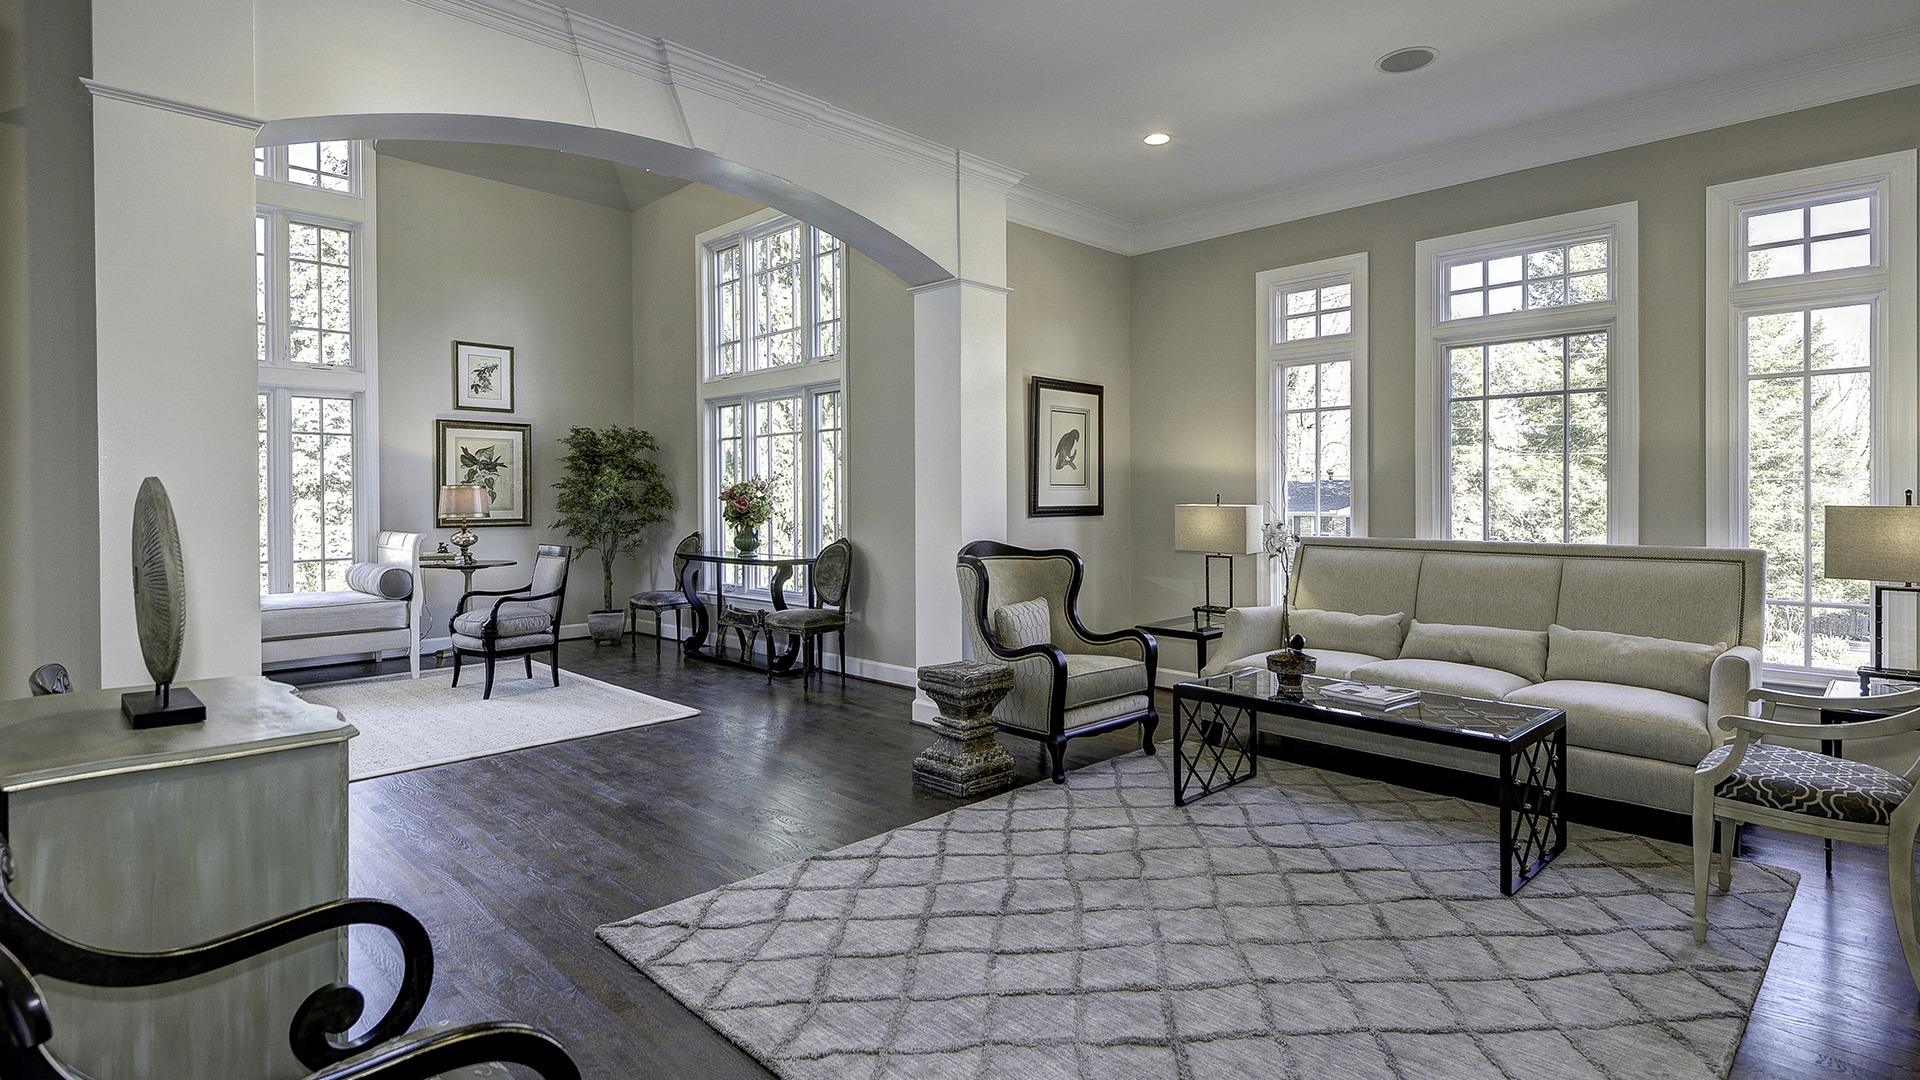 The Living Room in Carper Street, a Gulick | One custom home.